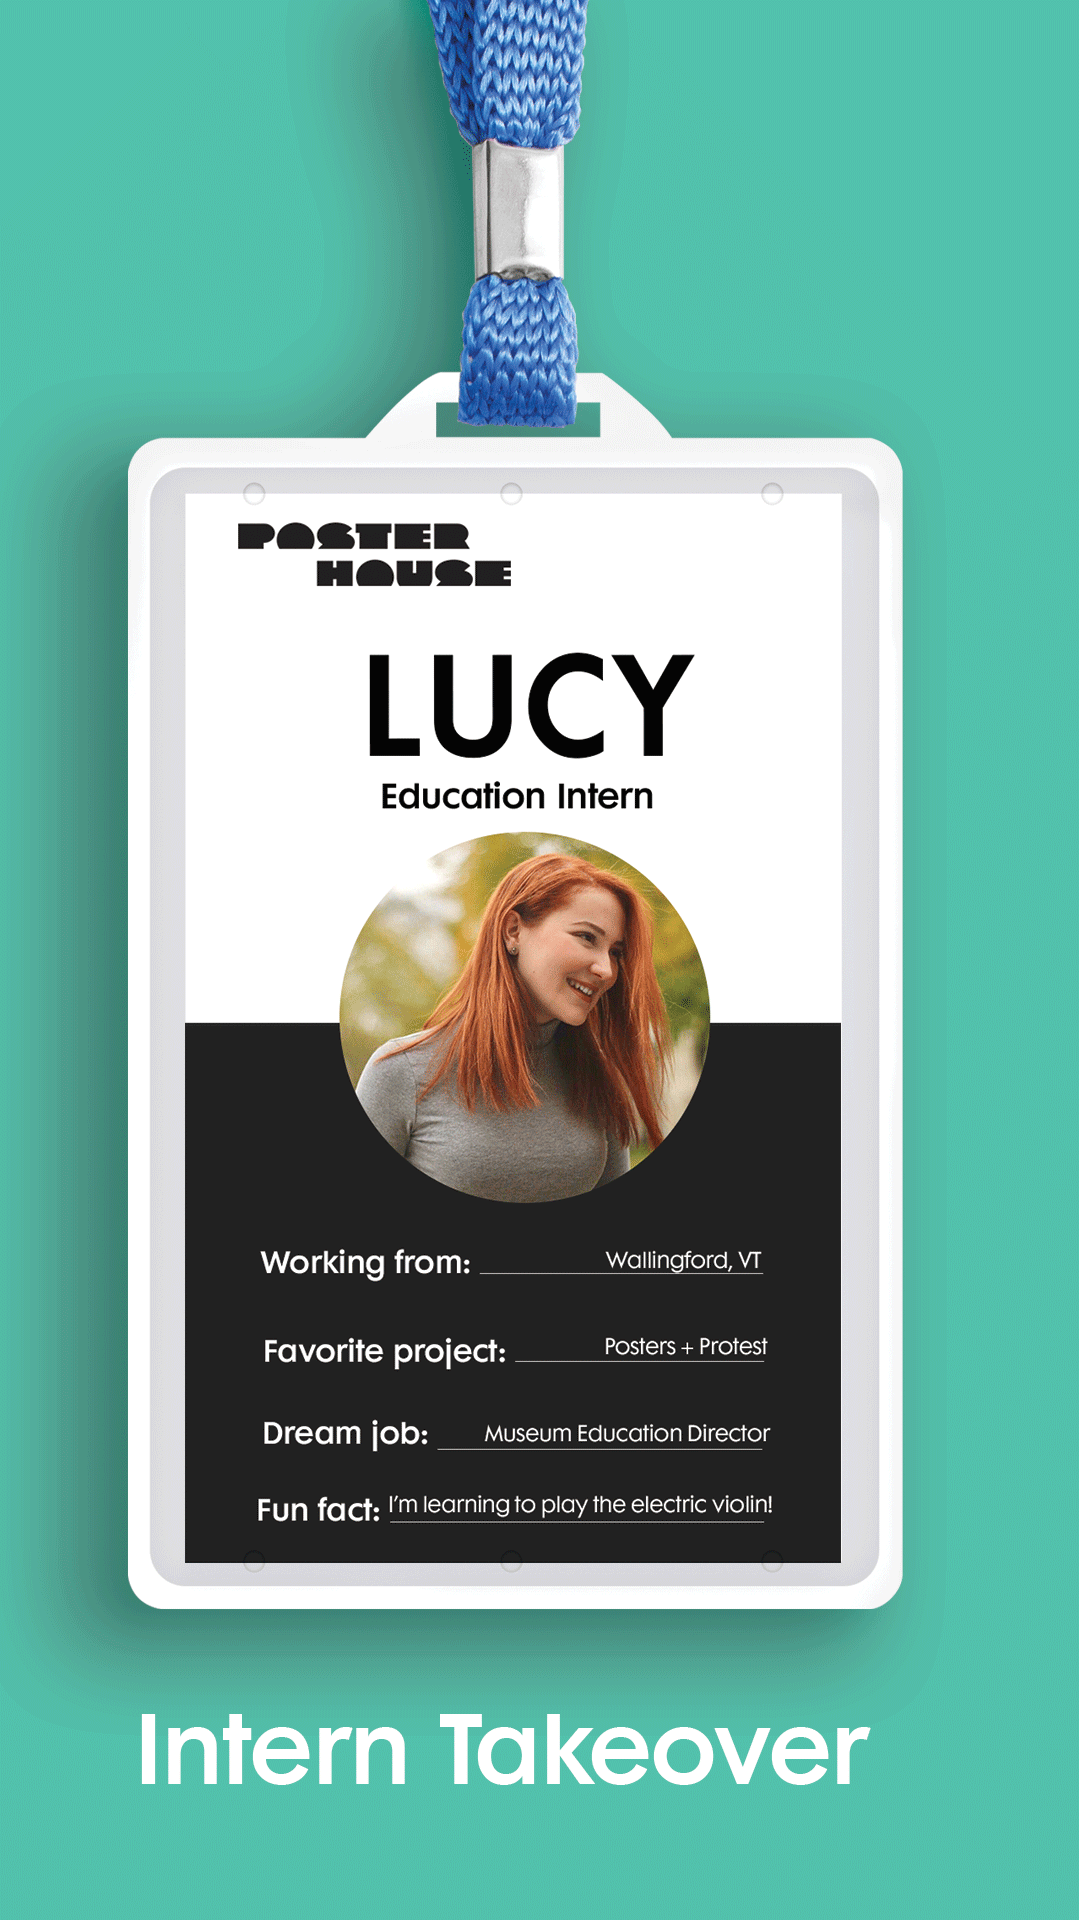 nametag on teal background featuring the name Lucy above a portrait of Lucy